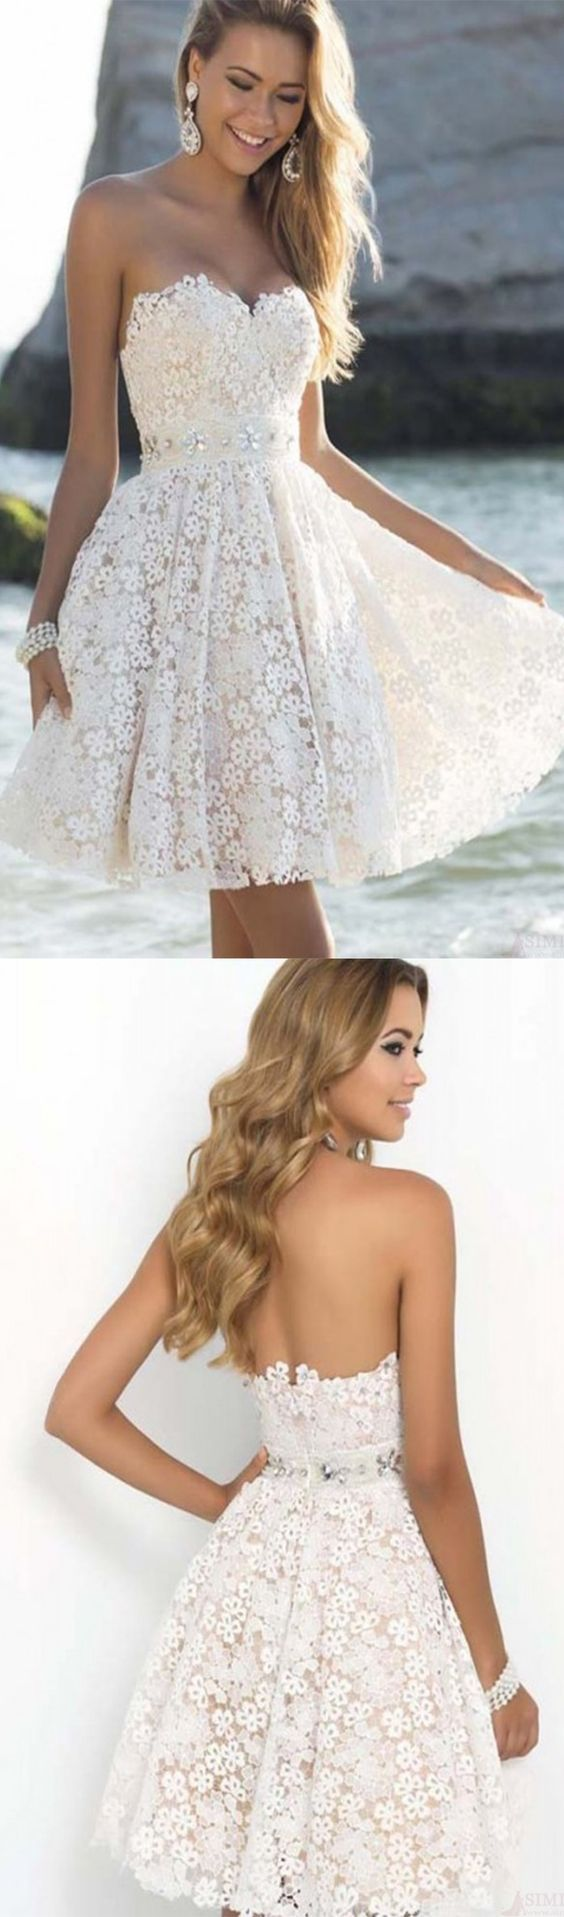 Short Lace Wedding Dress, Homecoming Dress,Short Prom Dress,Graduation Party Dresses, Homecoming Dresses For Teens on Storenvy